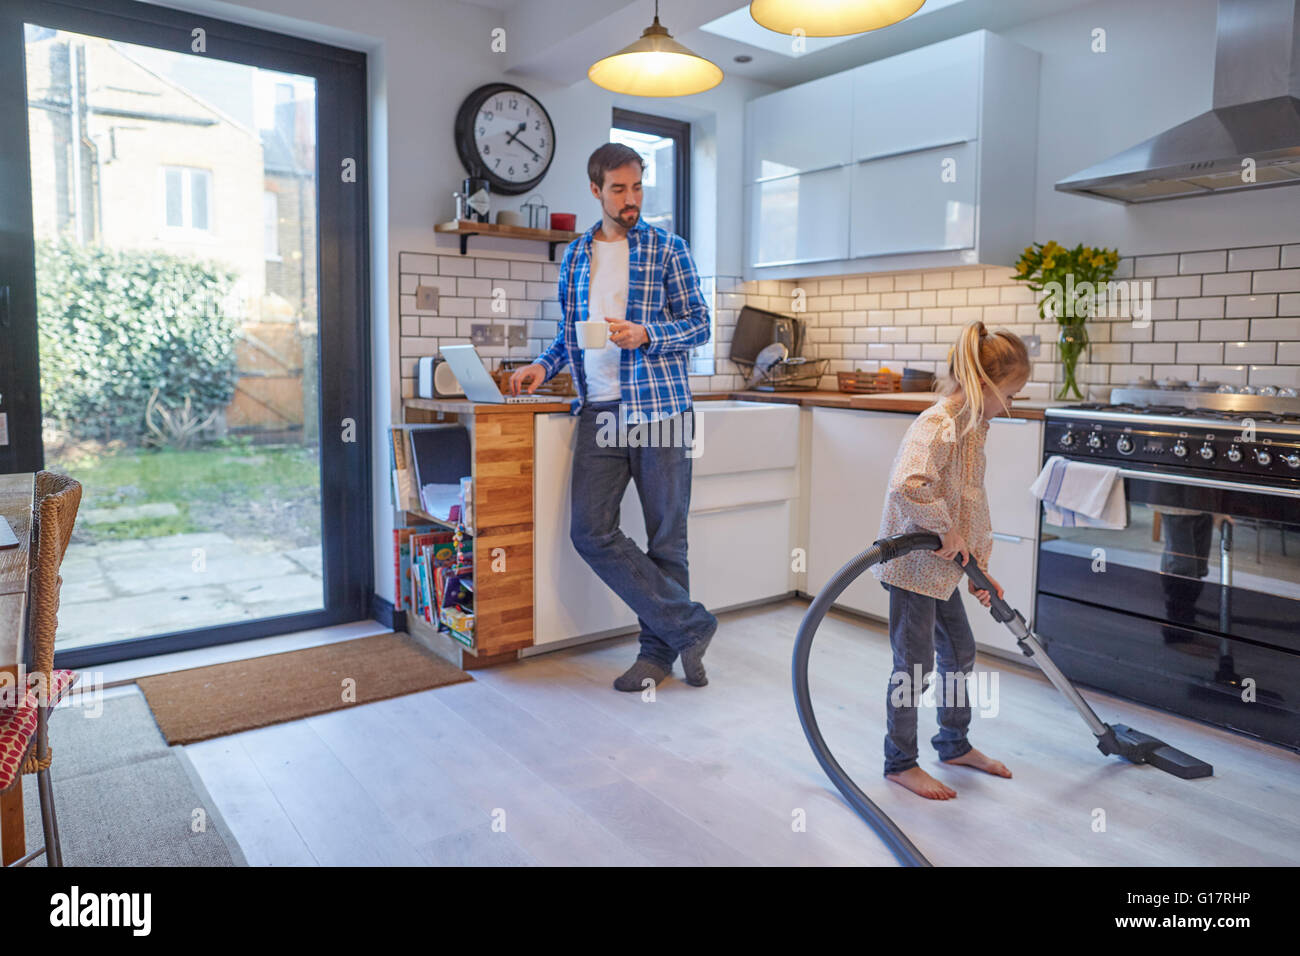 Kitchen Floor Vacuum Father Watching Daughter Vacuum Kitchen Floor Stock Photo Royalty